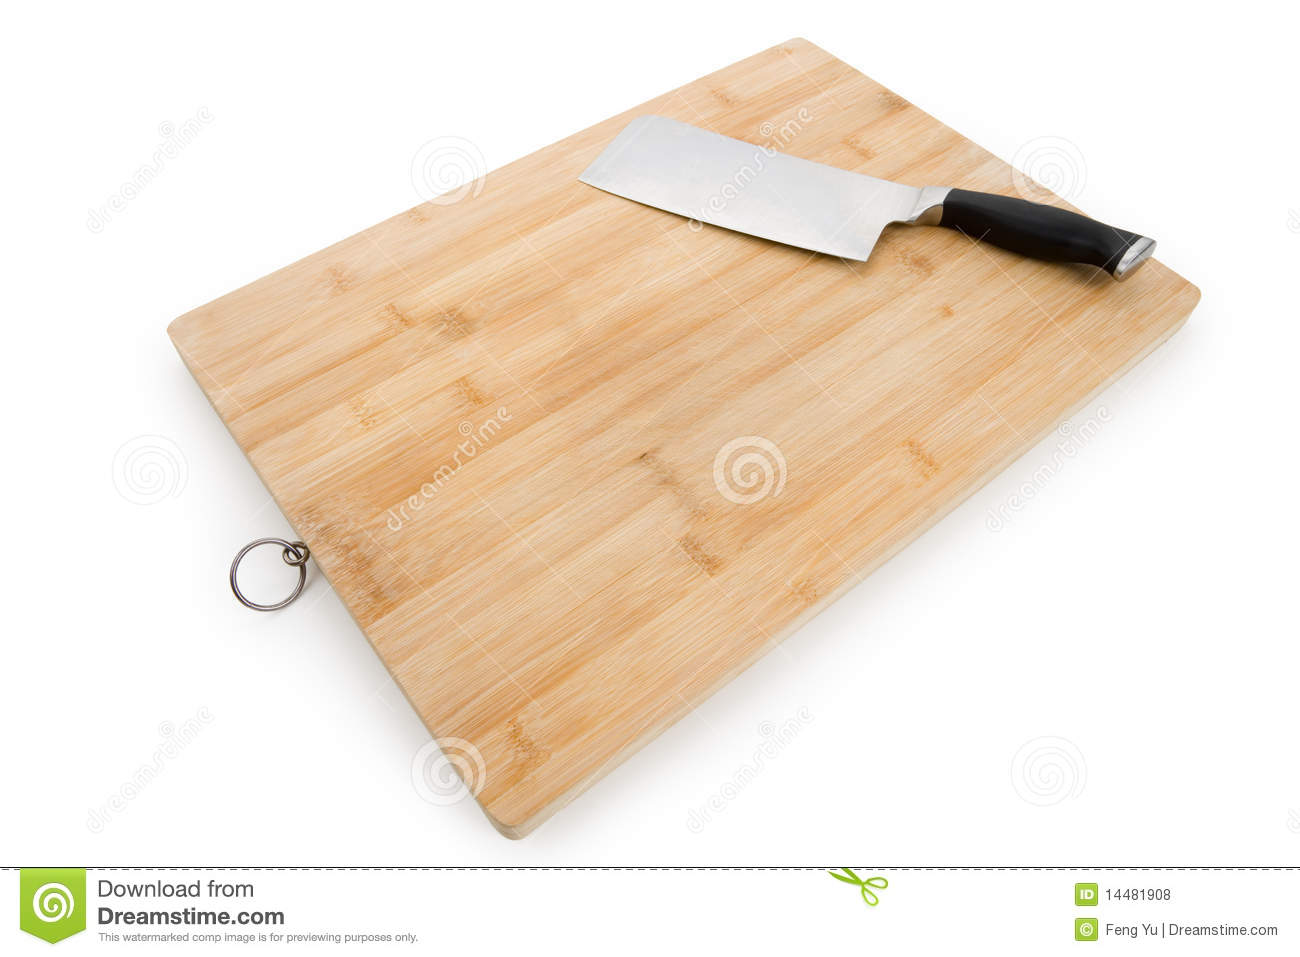 Cutting board and kitchen knife royalty free stock photos for Kitchen knife set of 7pcs with cutting board